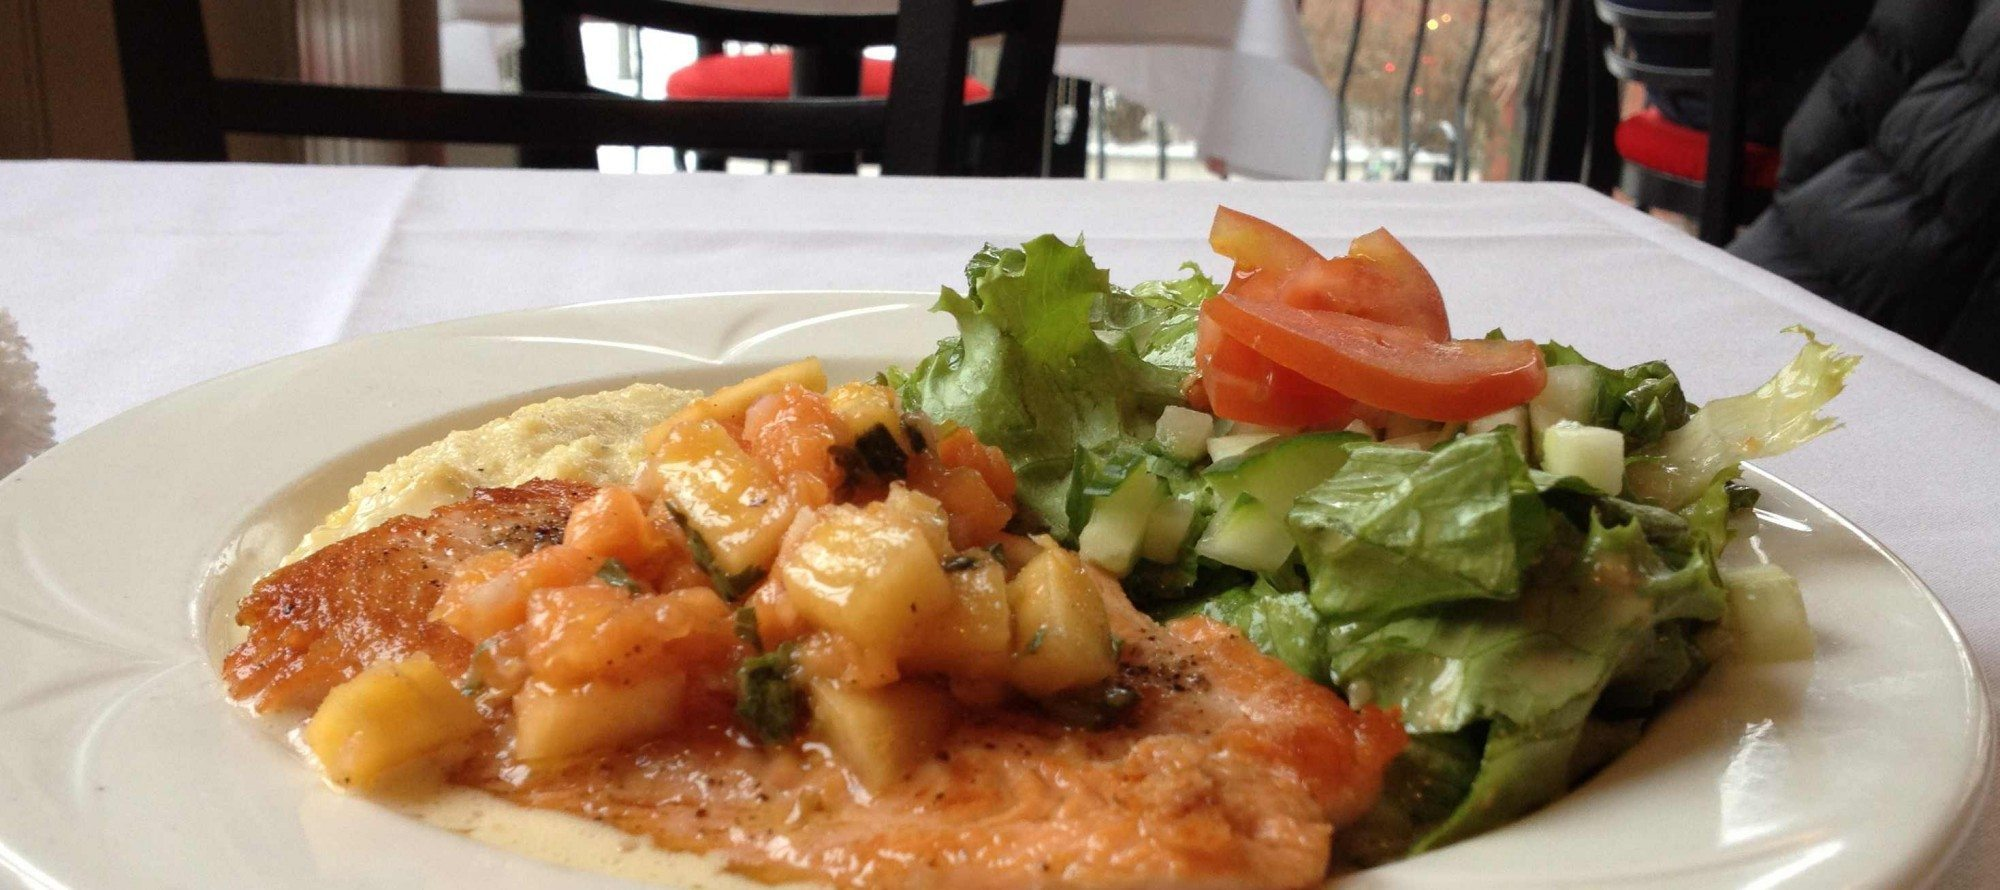 WEEKLY LUNCH PICK: Discovering fine French fare (and great lunch deals) at Gy Resto in Hull